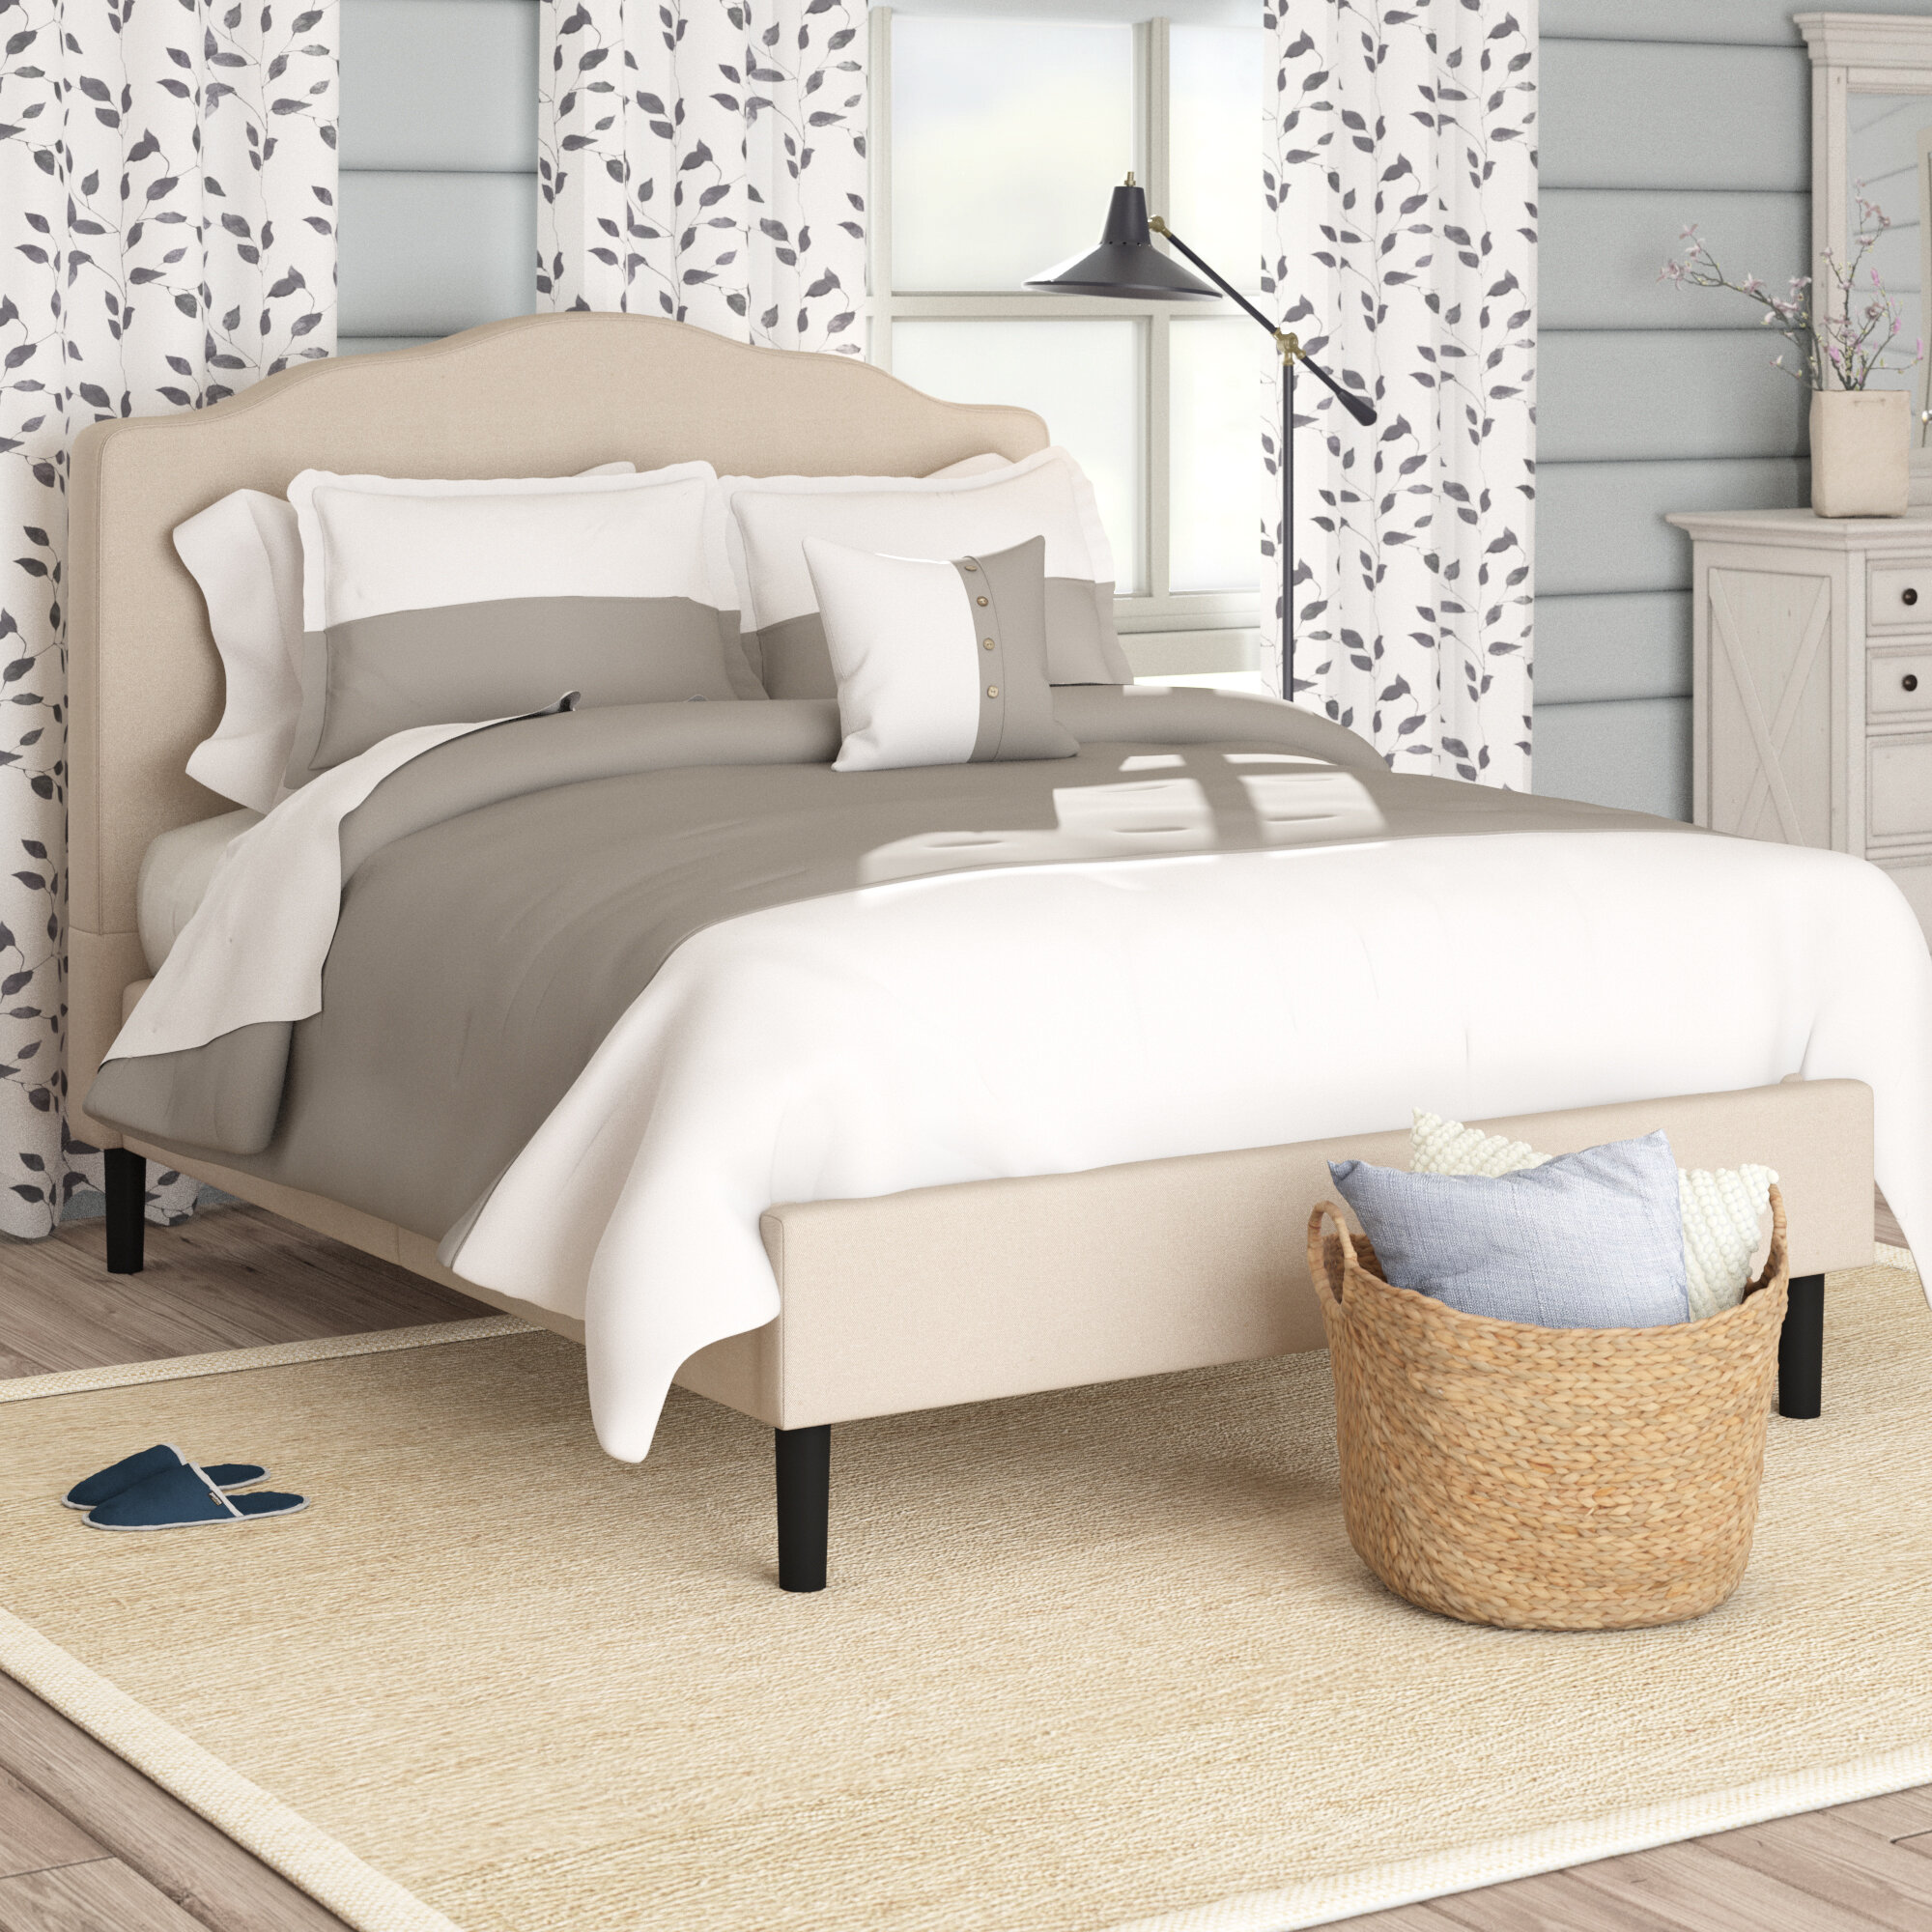 Picture of: Laurel Foundry Modern Farmhouse Hoopeston Upholstered Platform Bed Reviews